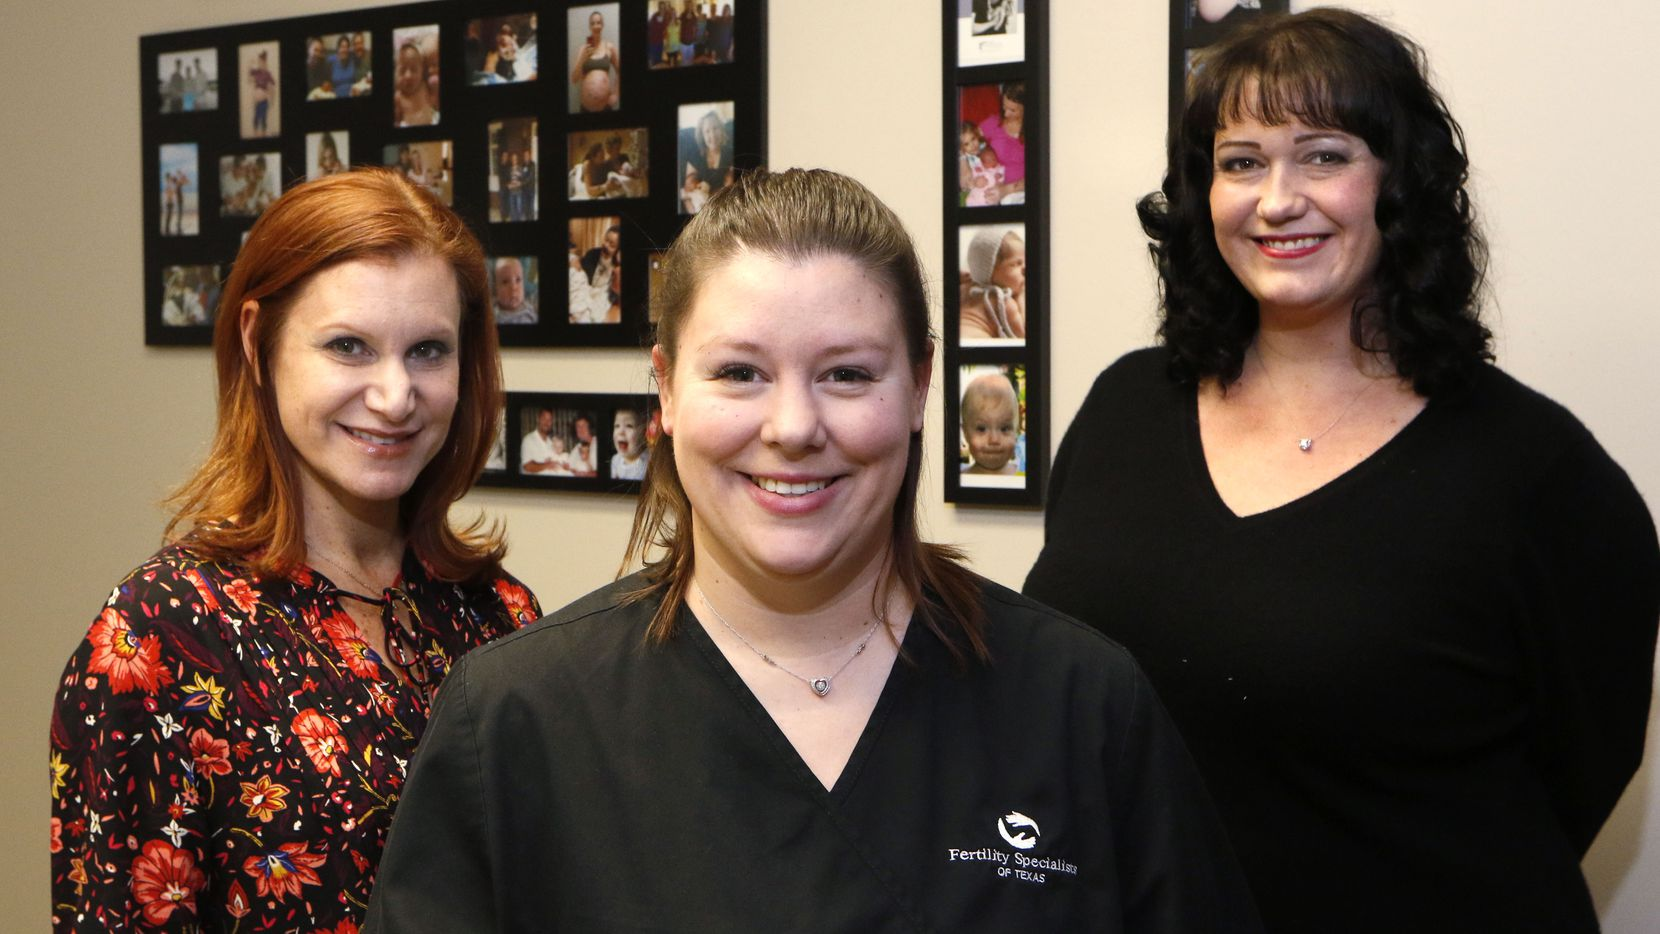 Ashley Moore (center) of Rockwall, a surrogate who is currently pregnant for a couple; Jill Errera (left) of Dallas, who has been a surrogate four times; and Stephanie Scott, co-owner of Simple Surrogacy, who has also has been a surrogate.